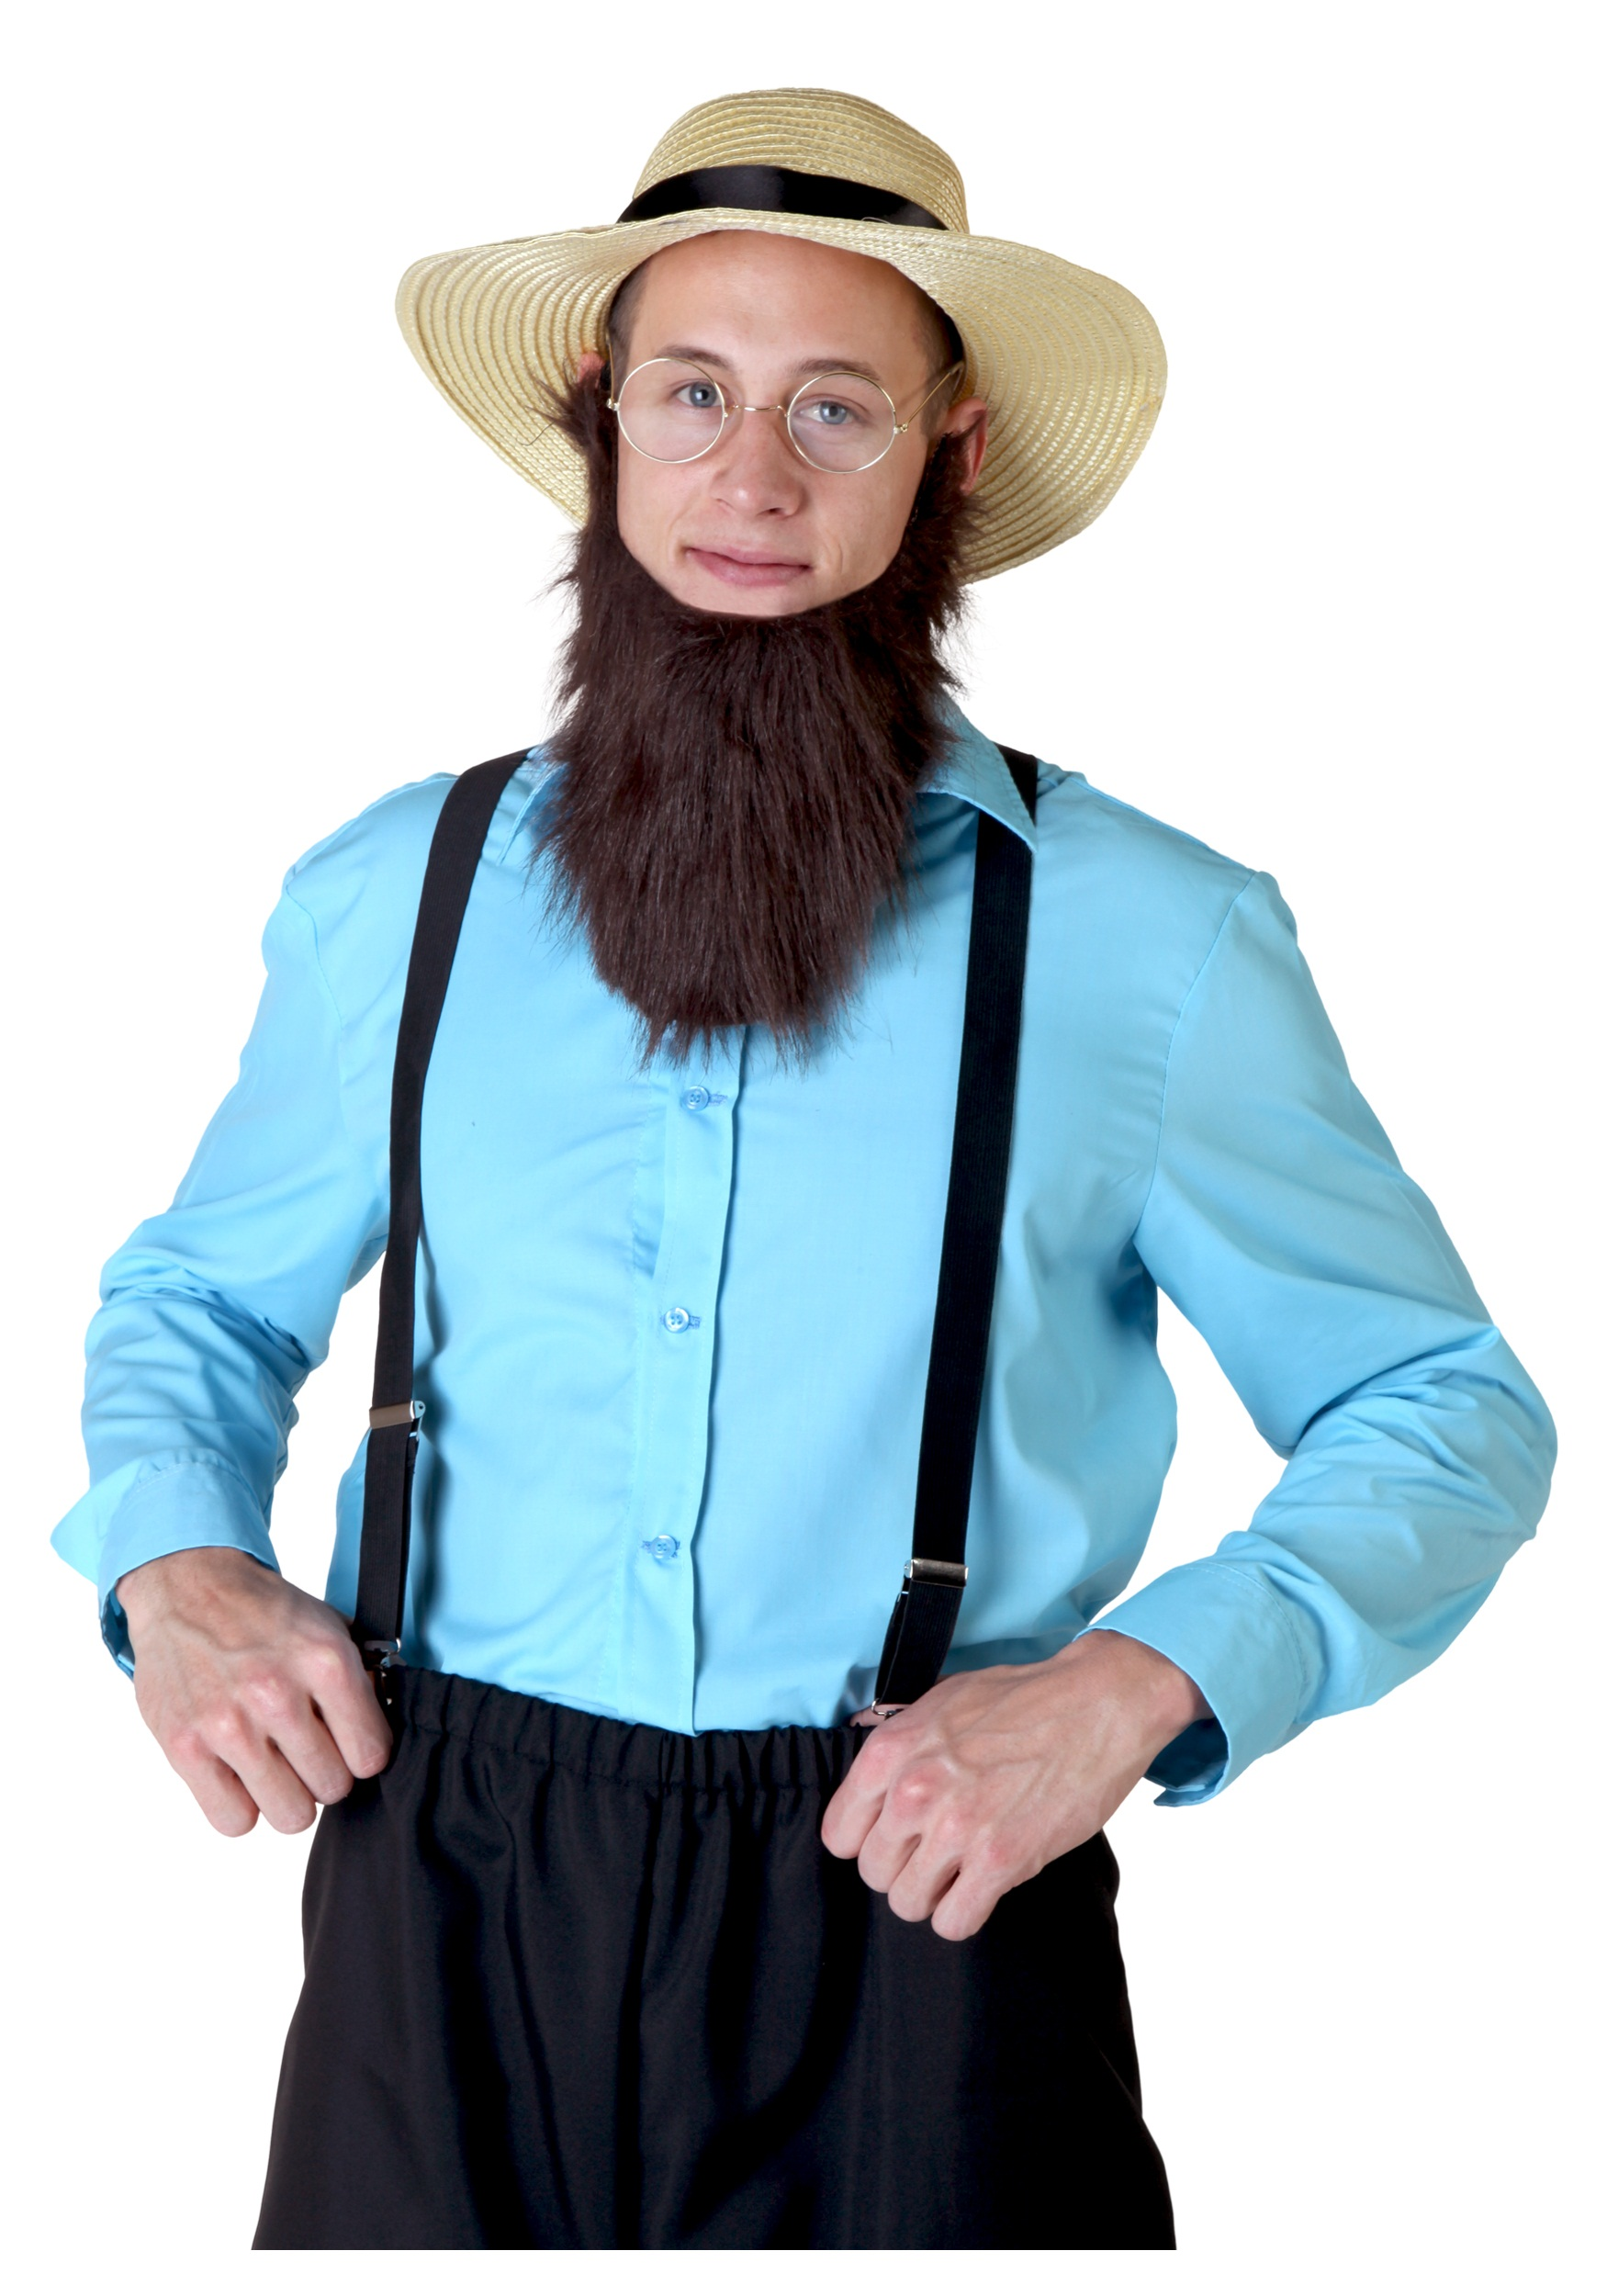 Amish girl clipart graphic library download Amish Man Costume graphic library download